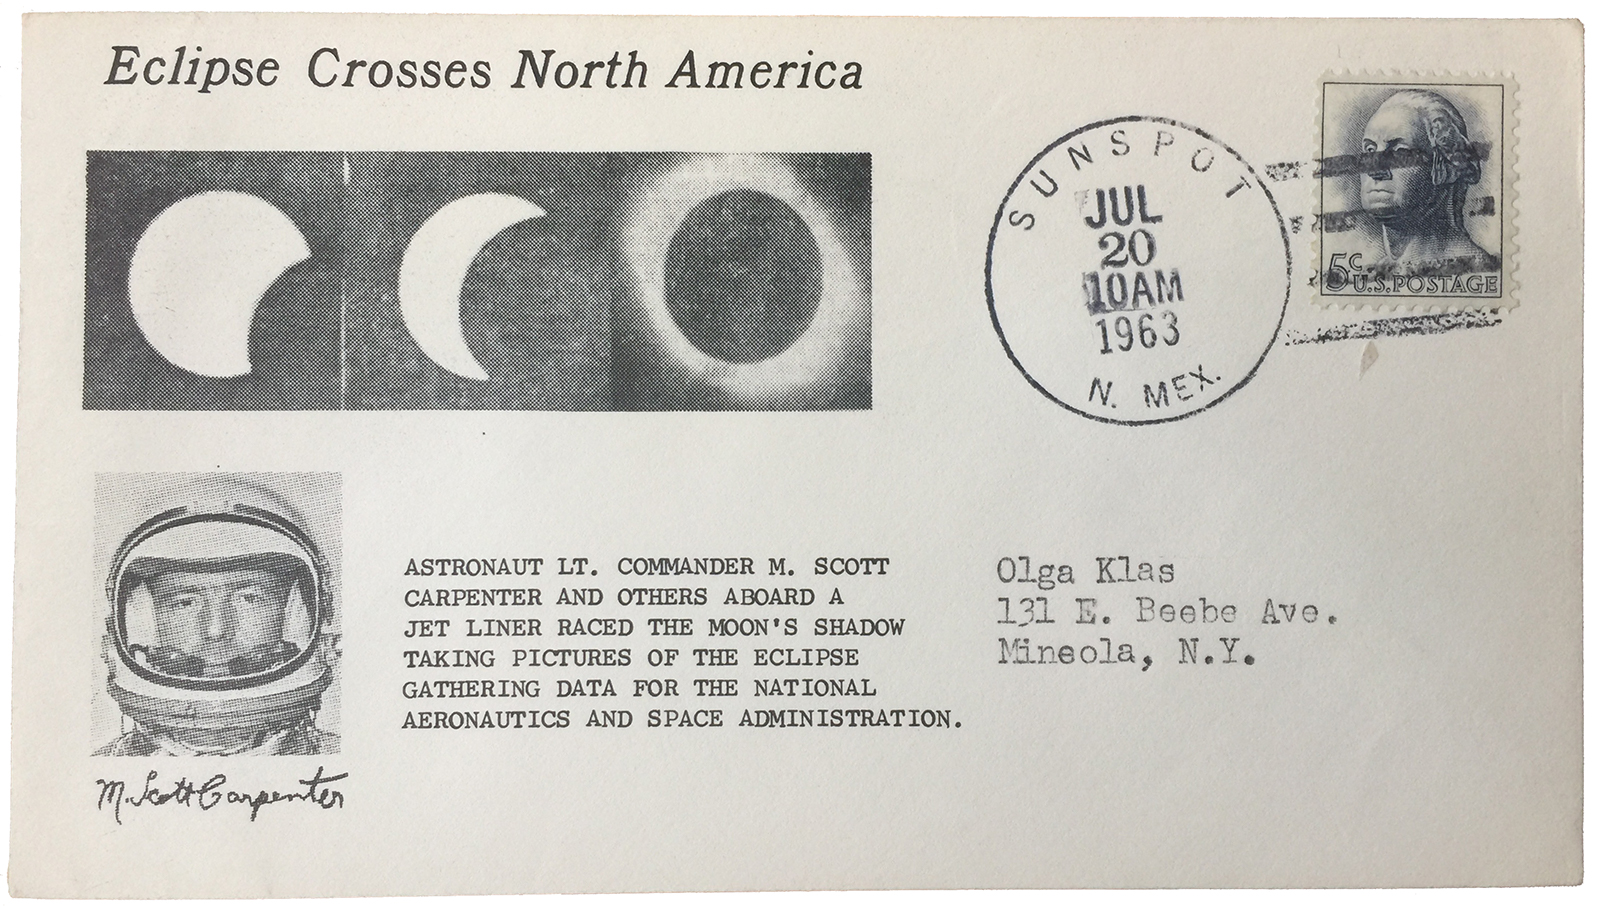 Commemorative postal cachet of eclipse